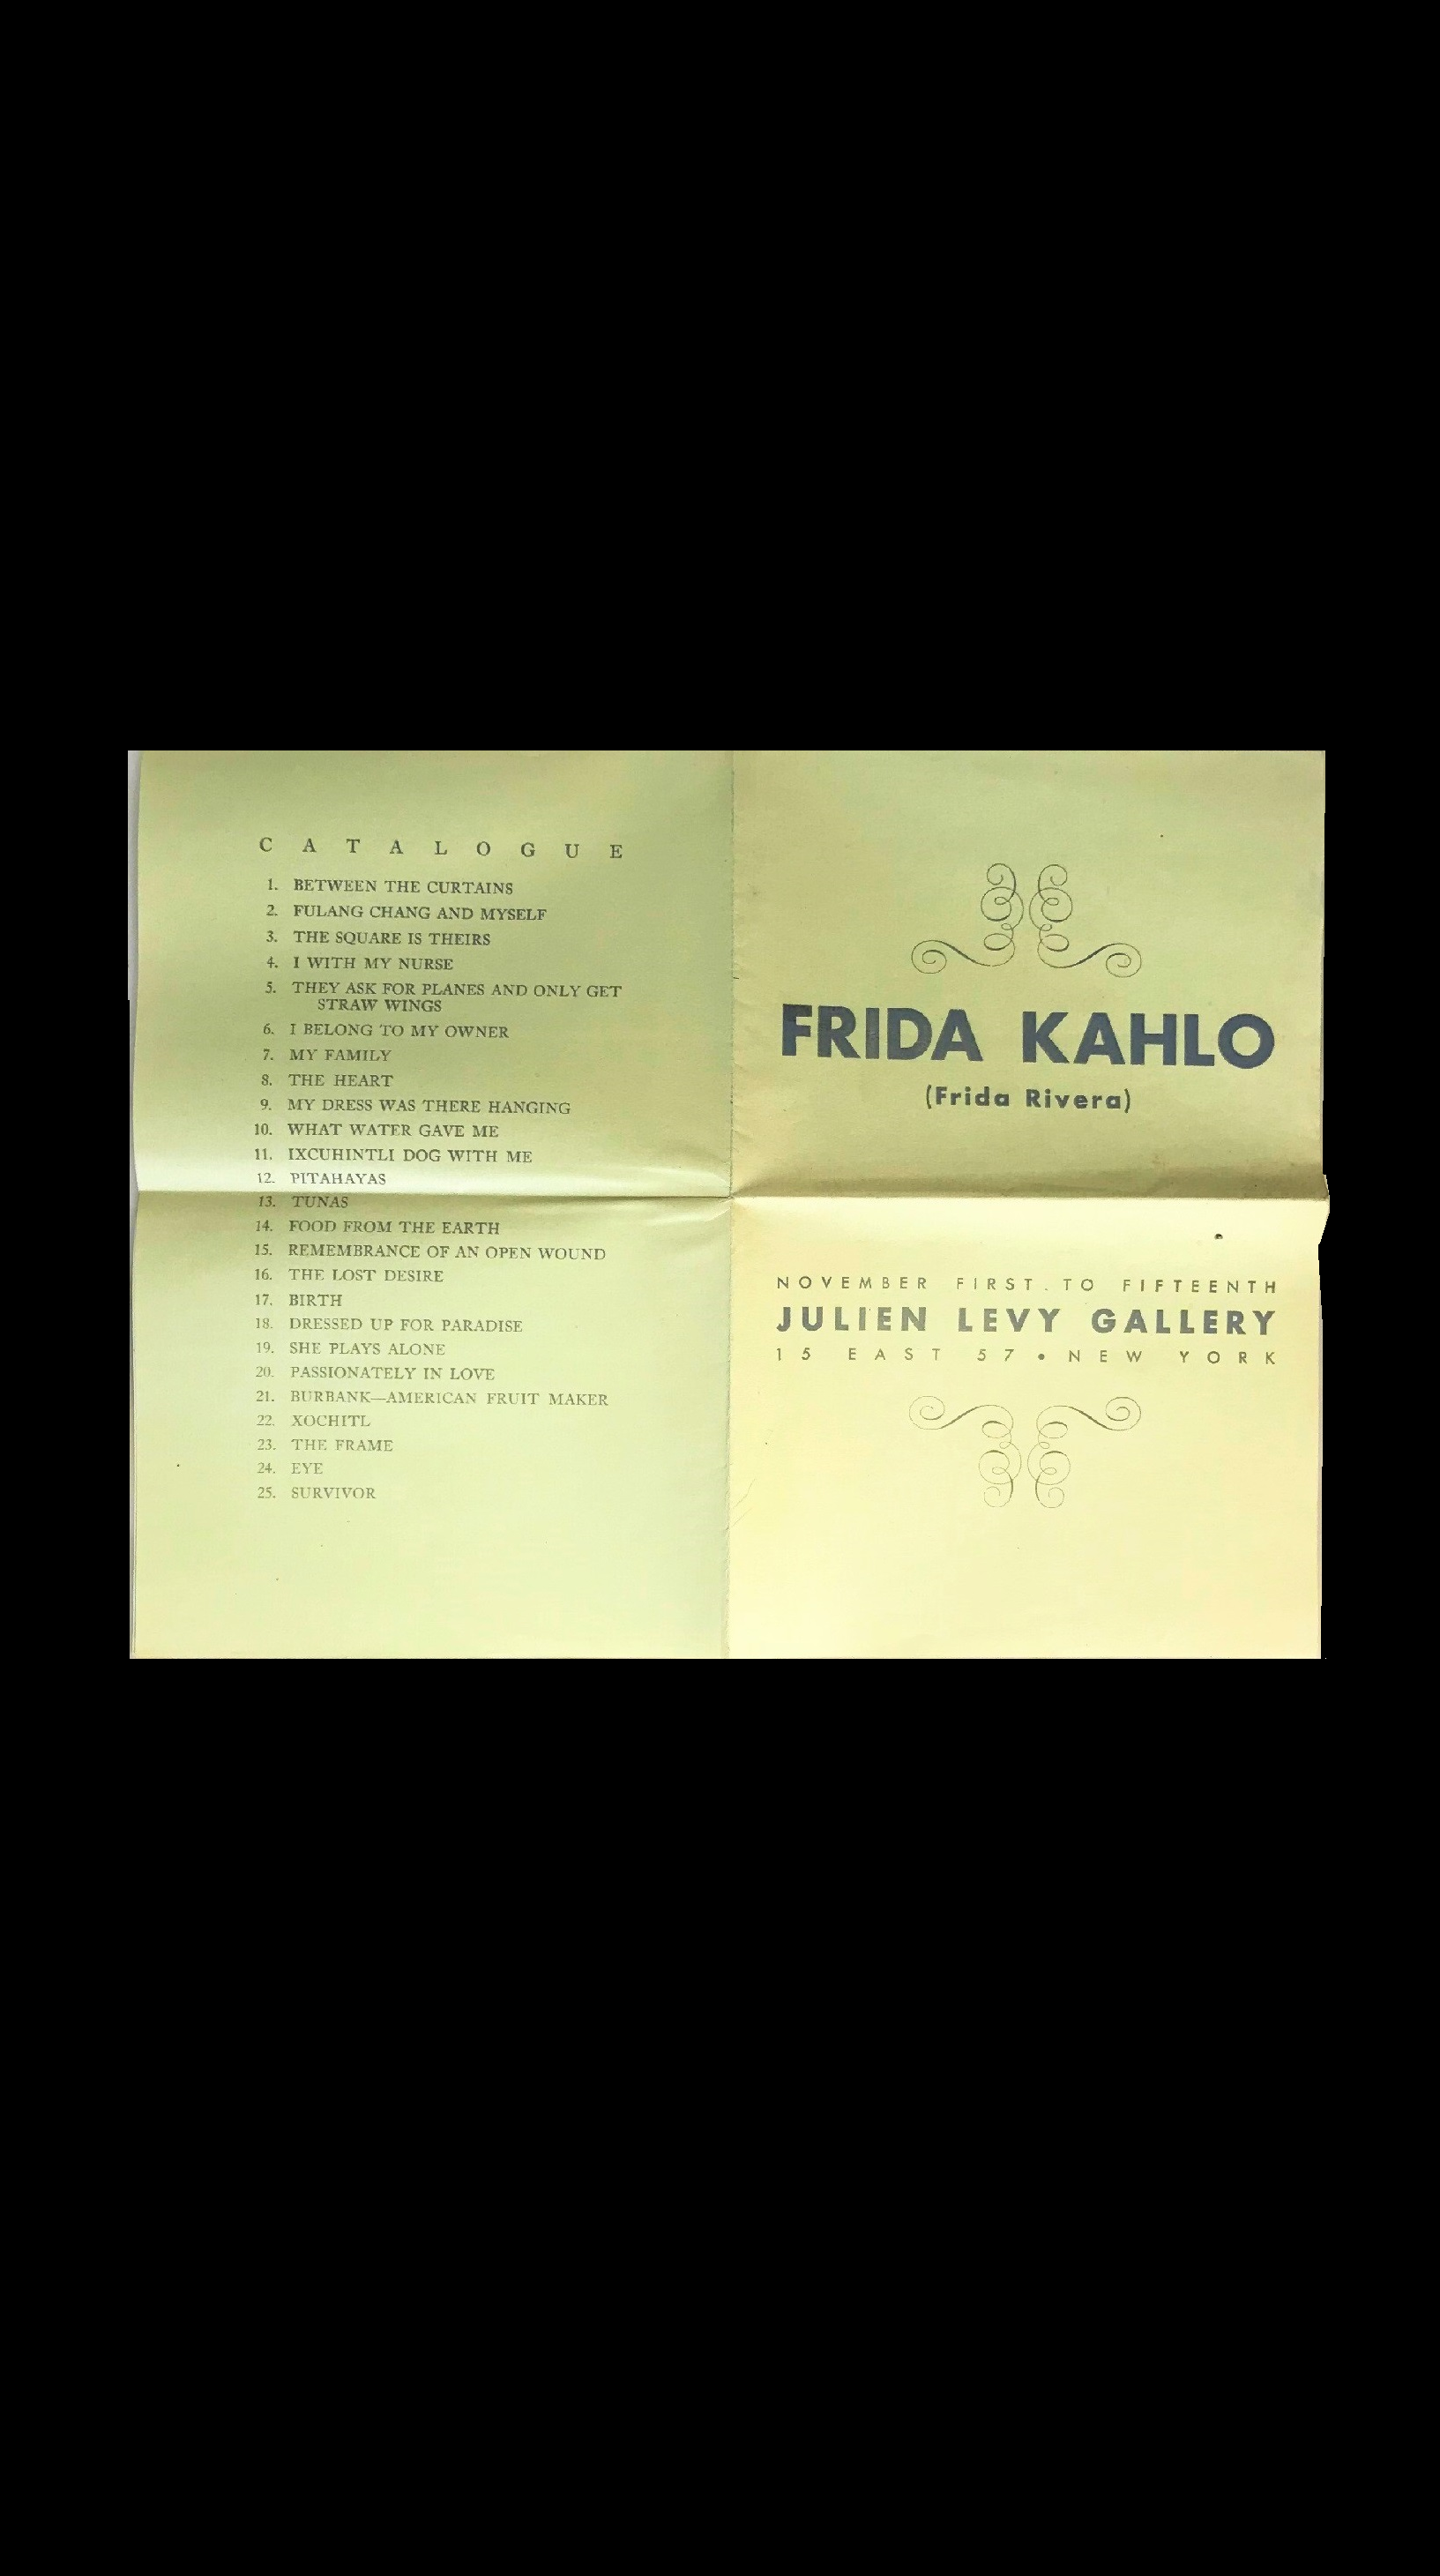 """Frida Kahlo- (Frida Rivera)"" , 1938, Rare Exhibition Catalogue, November First To Fifteenth, Julien Levy Gallery NYC."